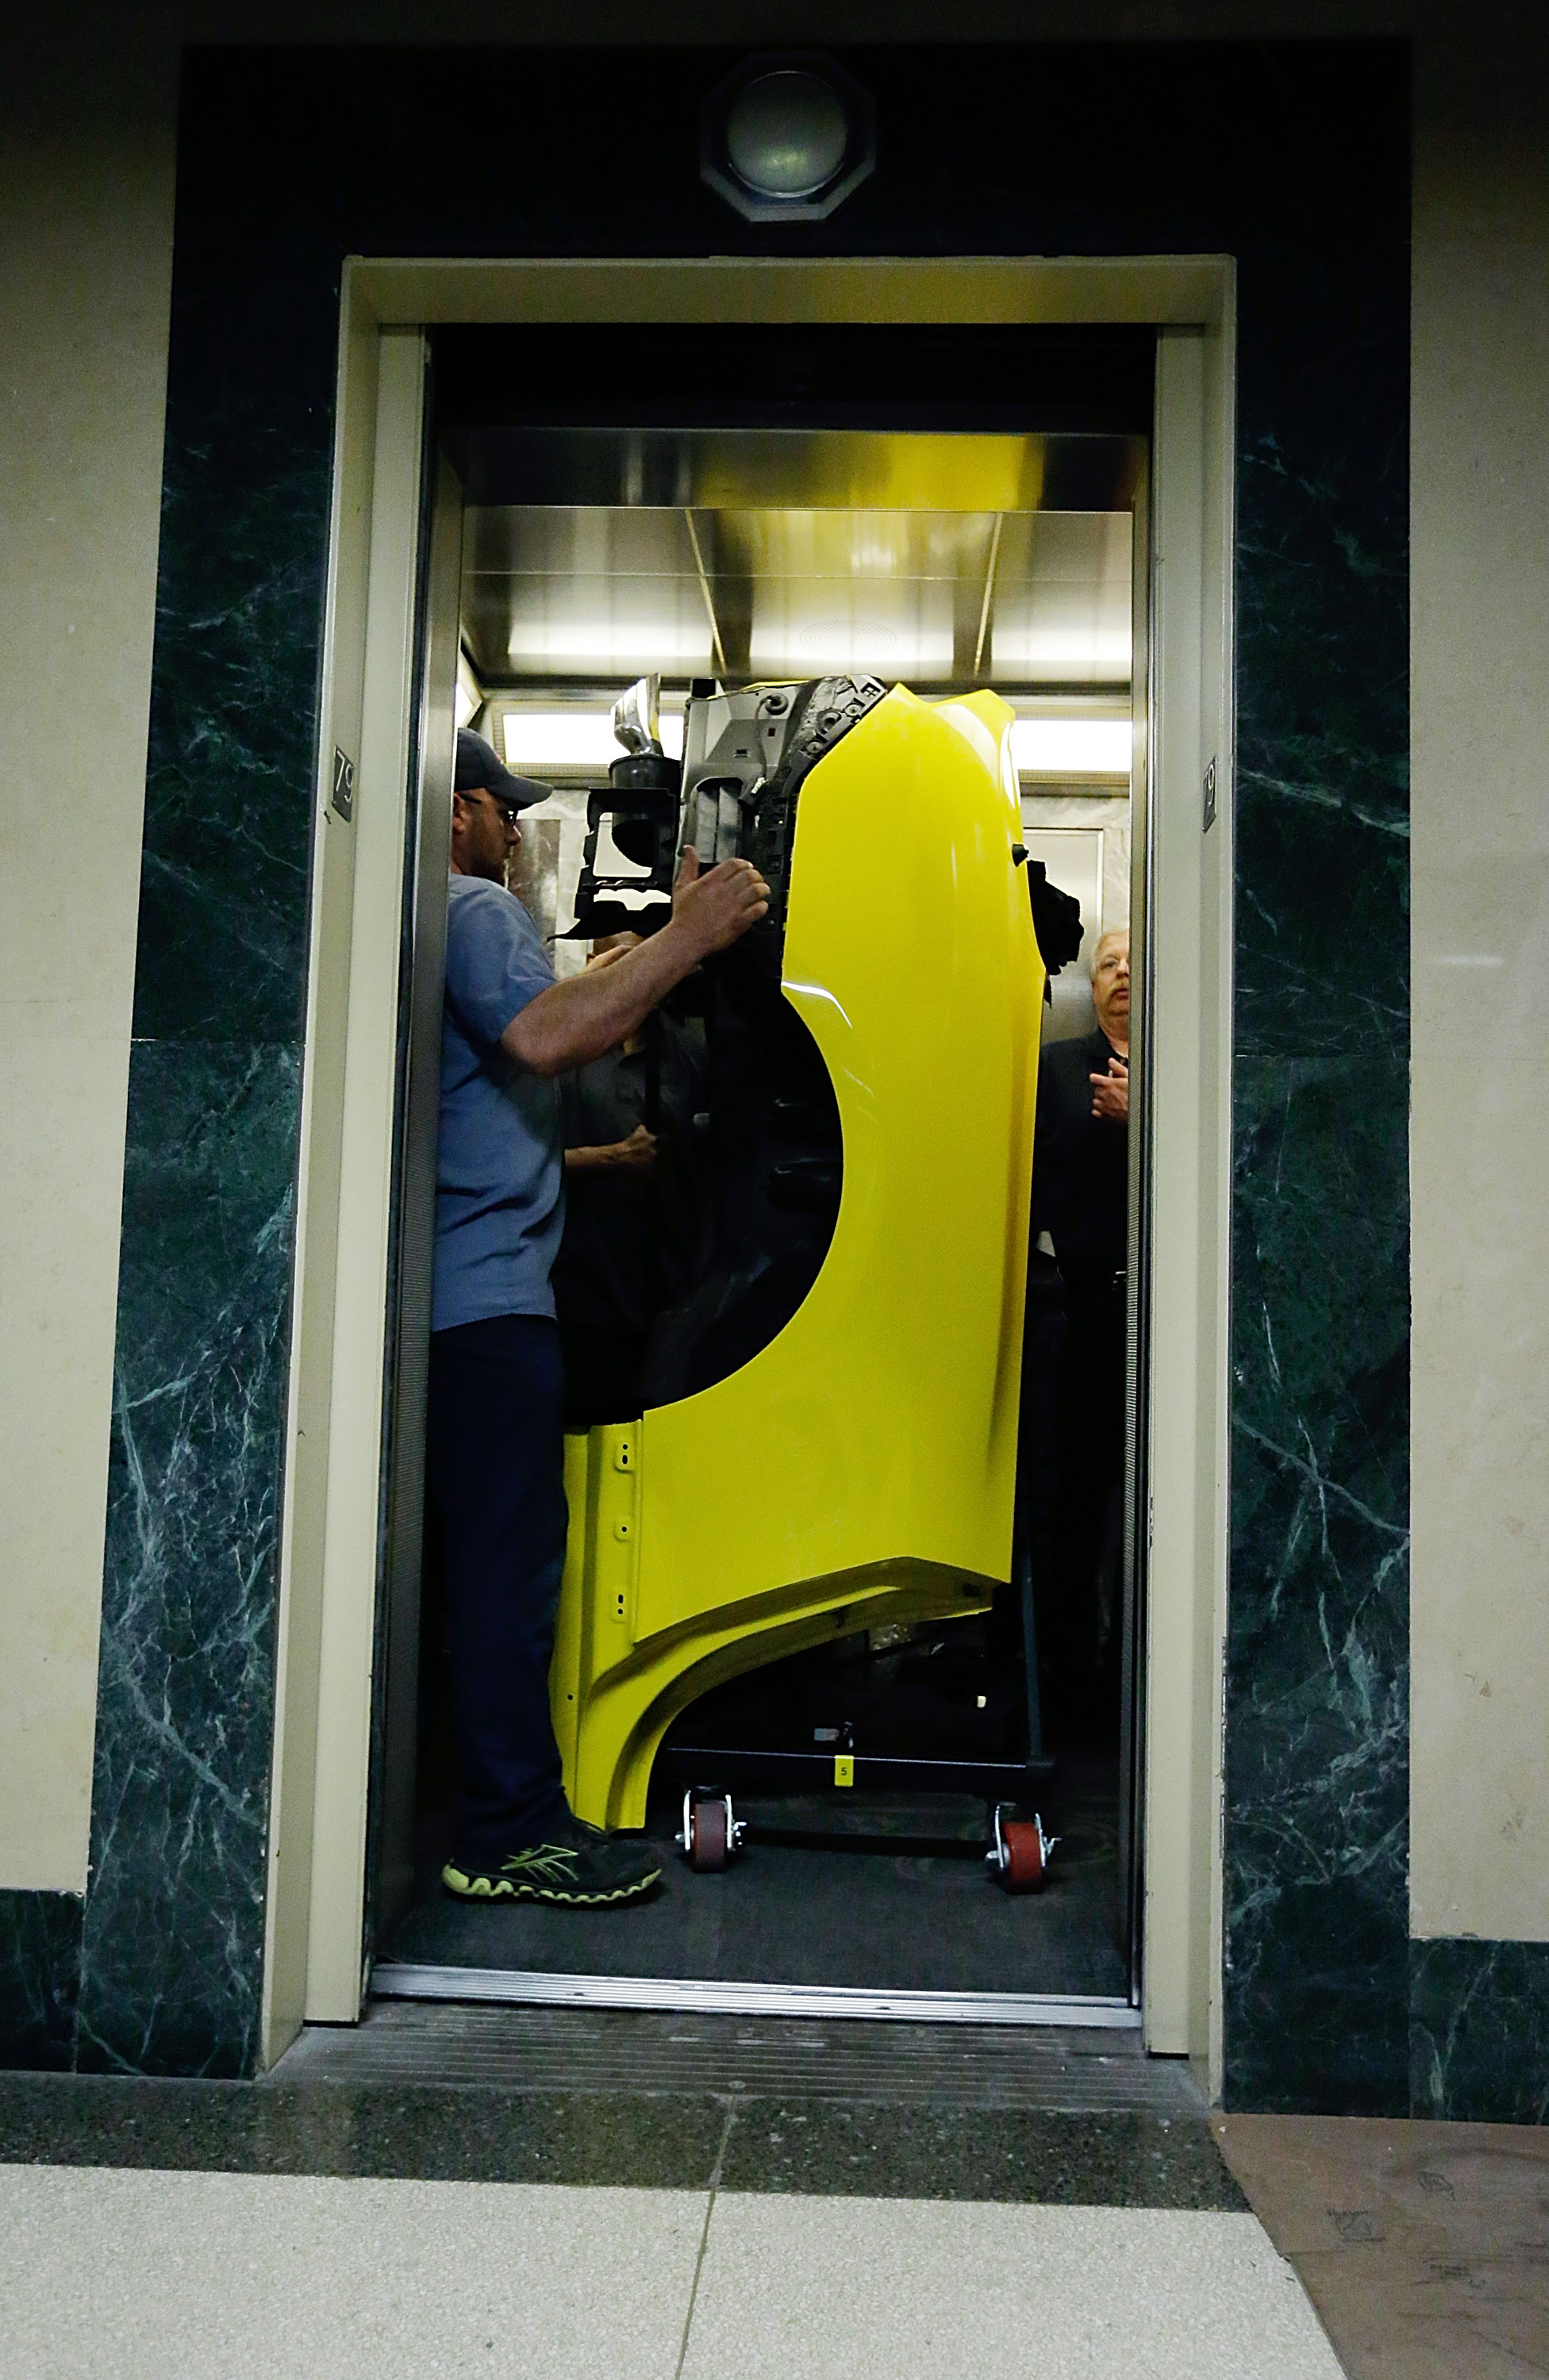 Workers load 2015 Ford Mustang components into the elevators.